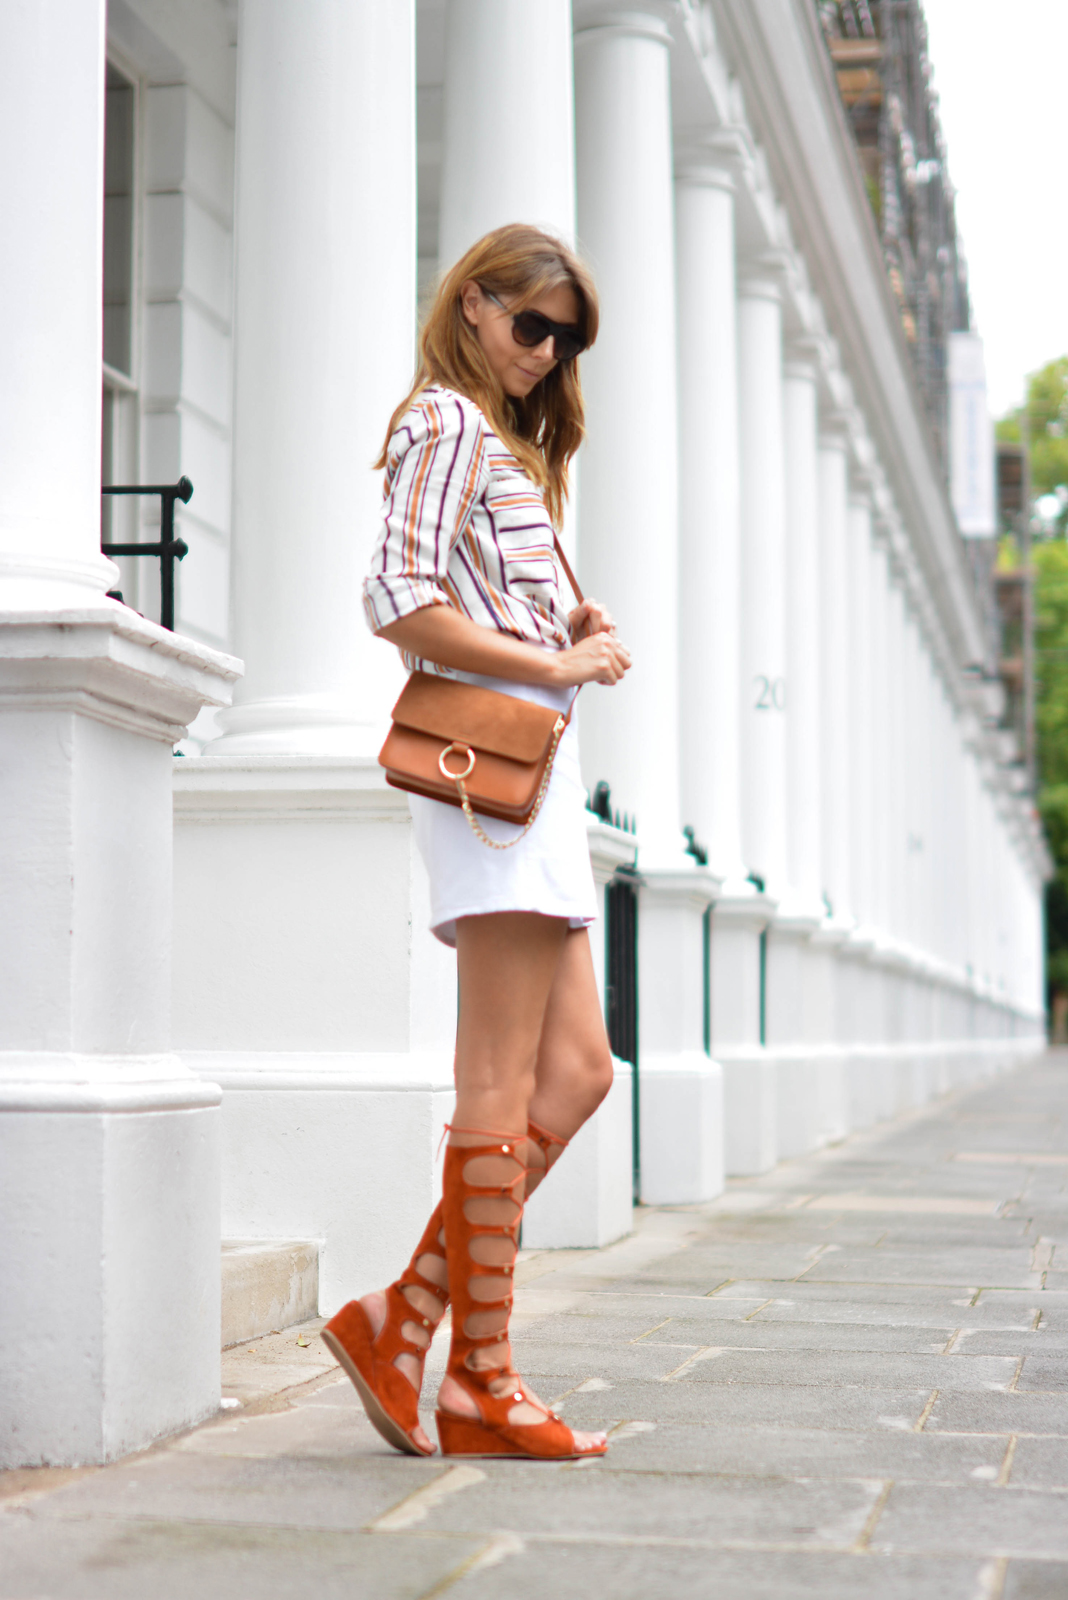 EJSTYLE wears Chloe style Tan lace up gladiator wedge sandals, White button up denim mini skirt, retro stripe shirt, Tan suede leather chloe style Faye bag, summer outfit, OOTD